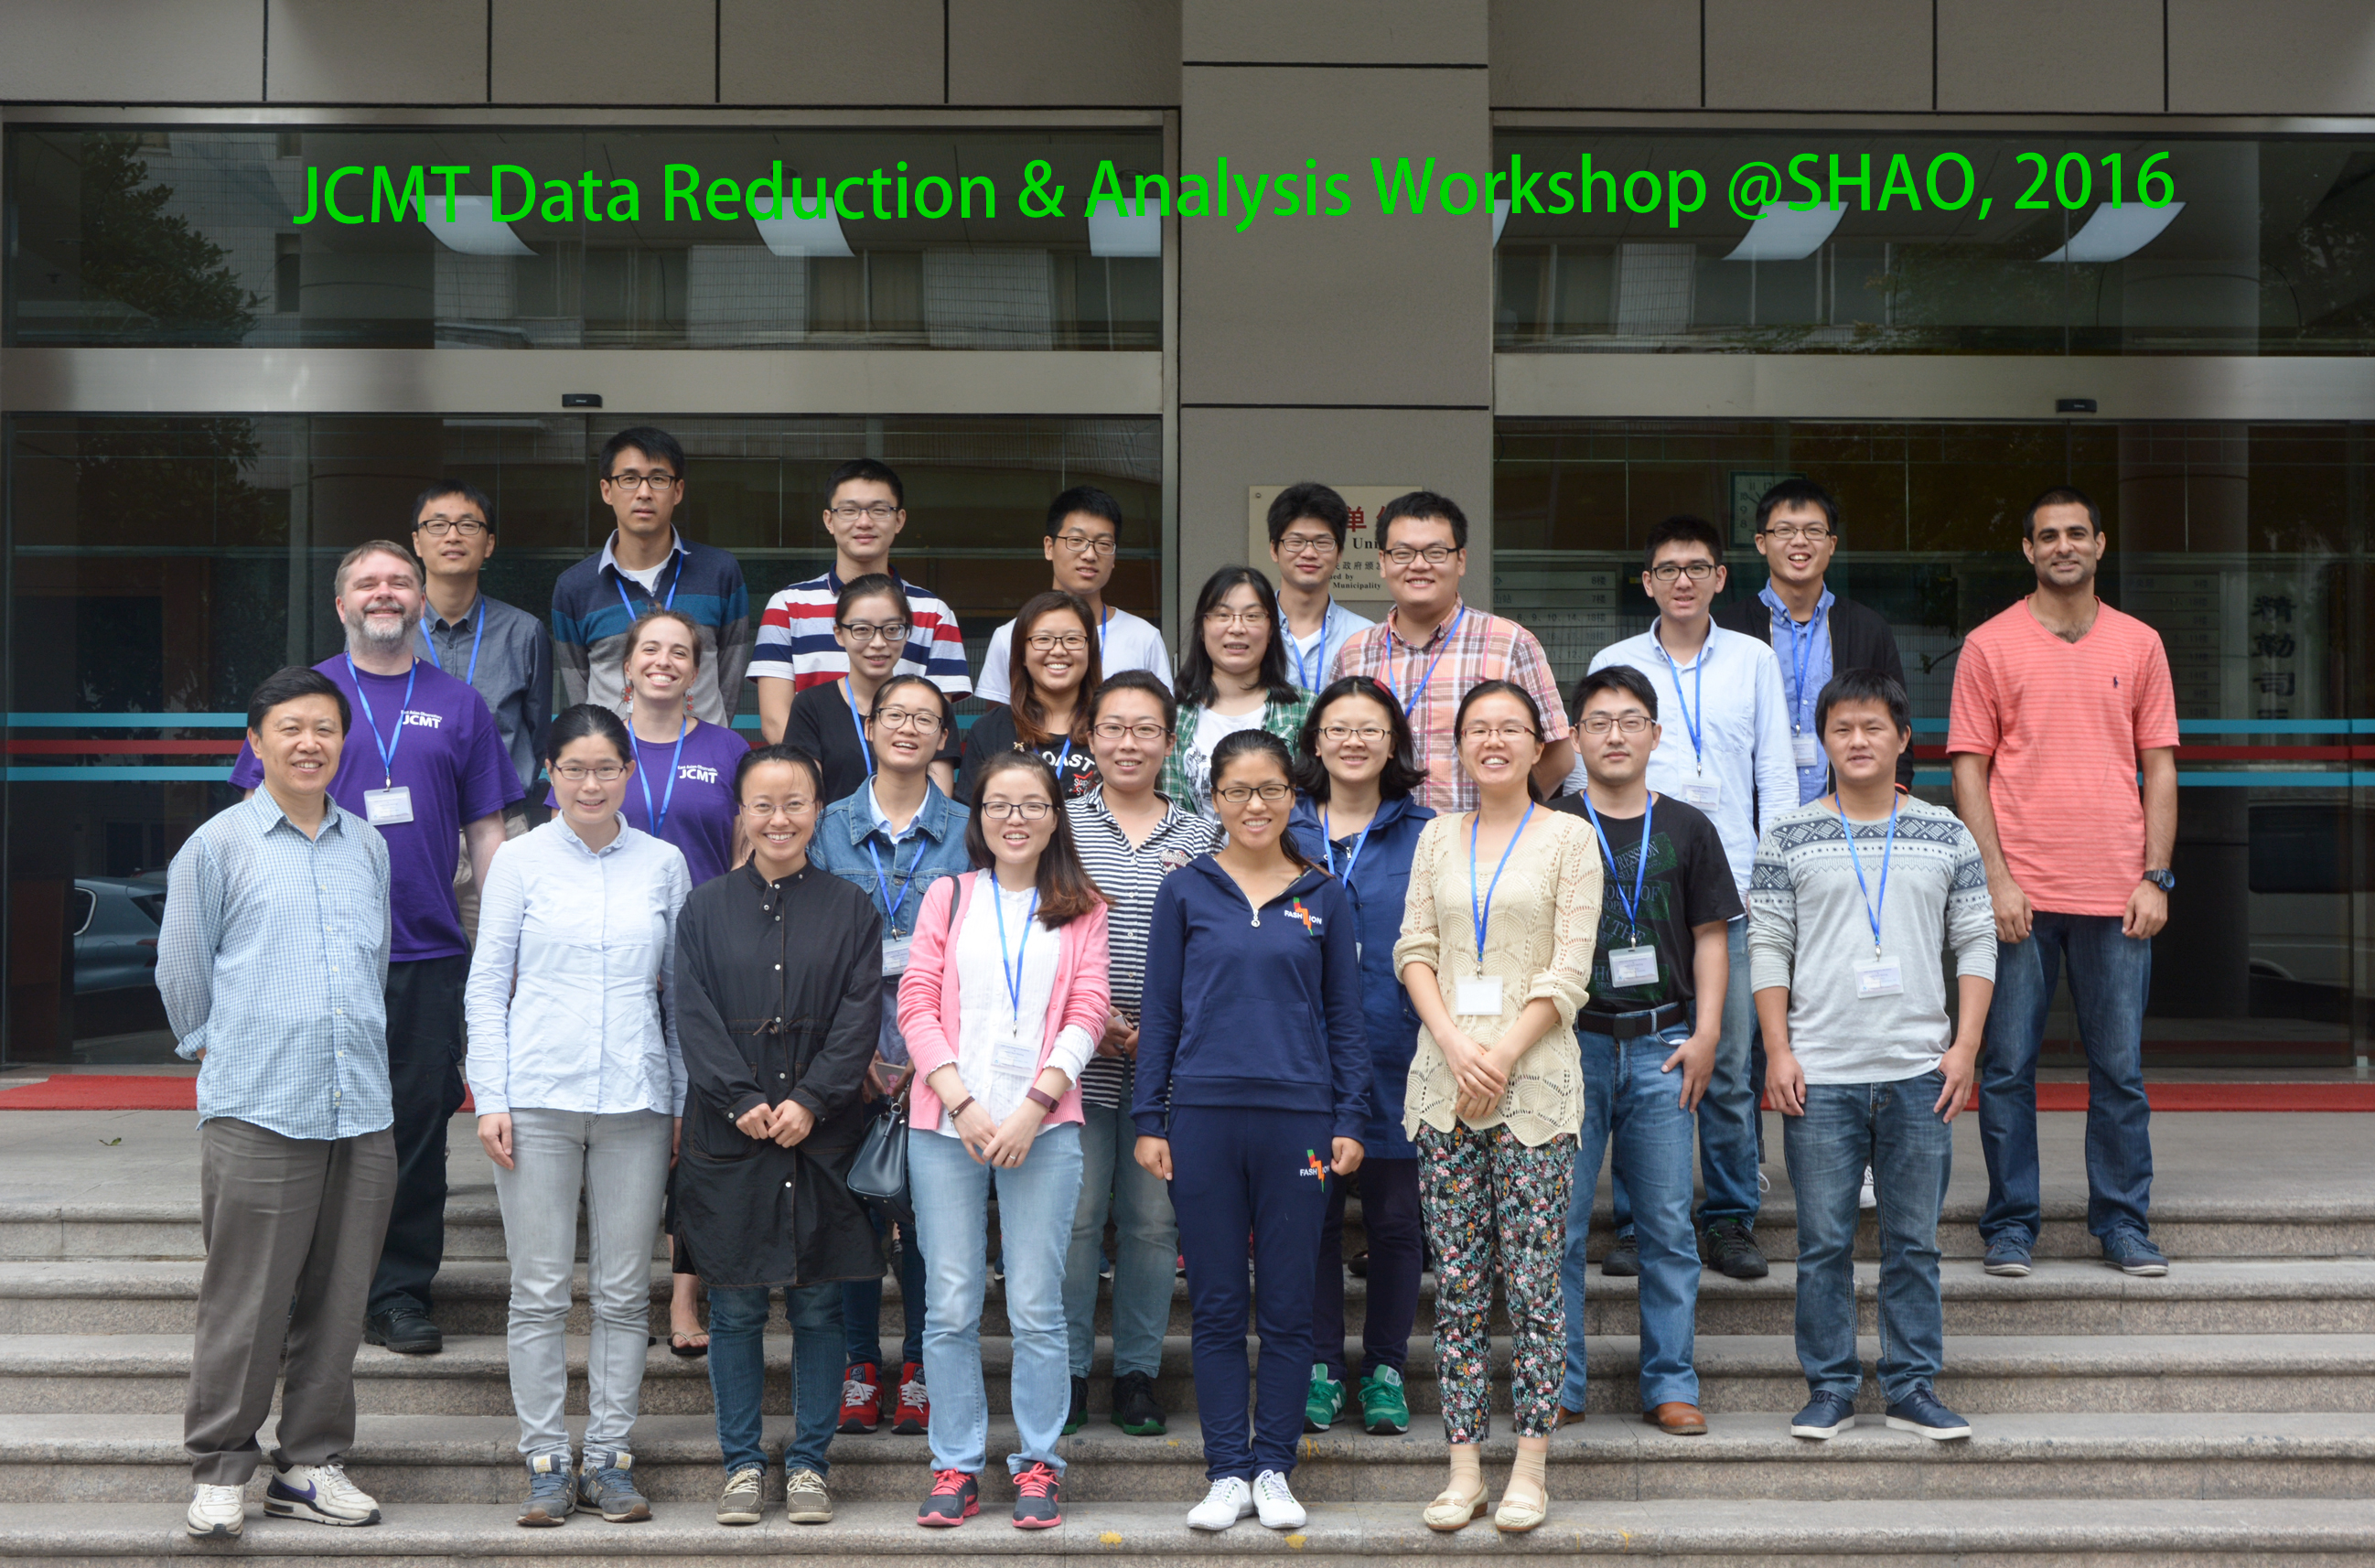 Participants at the JCMT reduction workshop, China, October 2016.